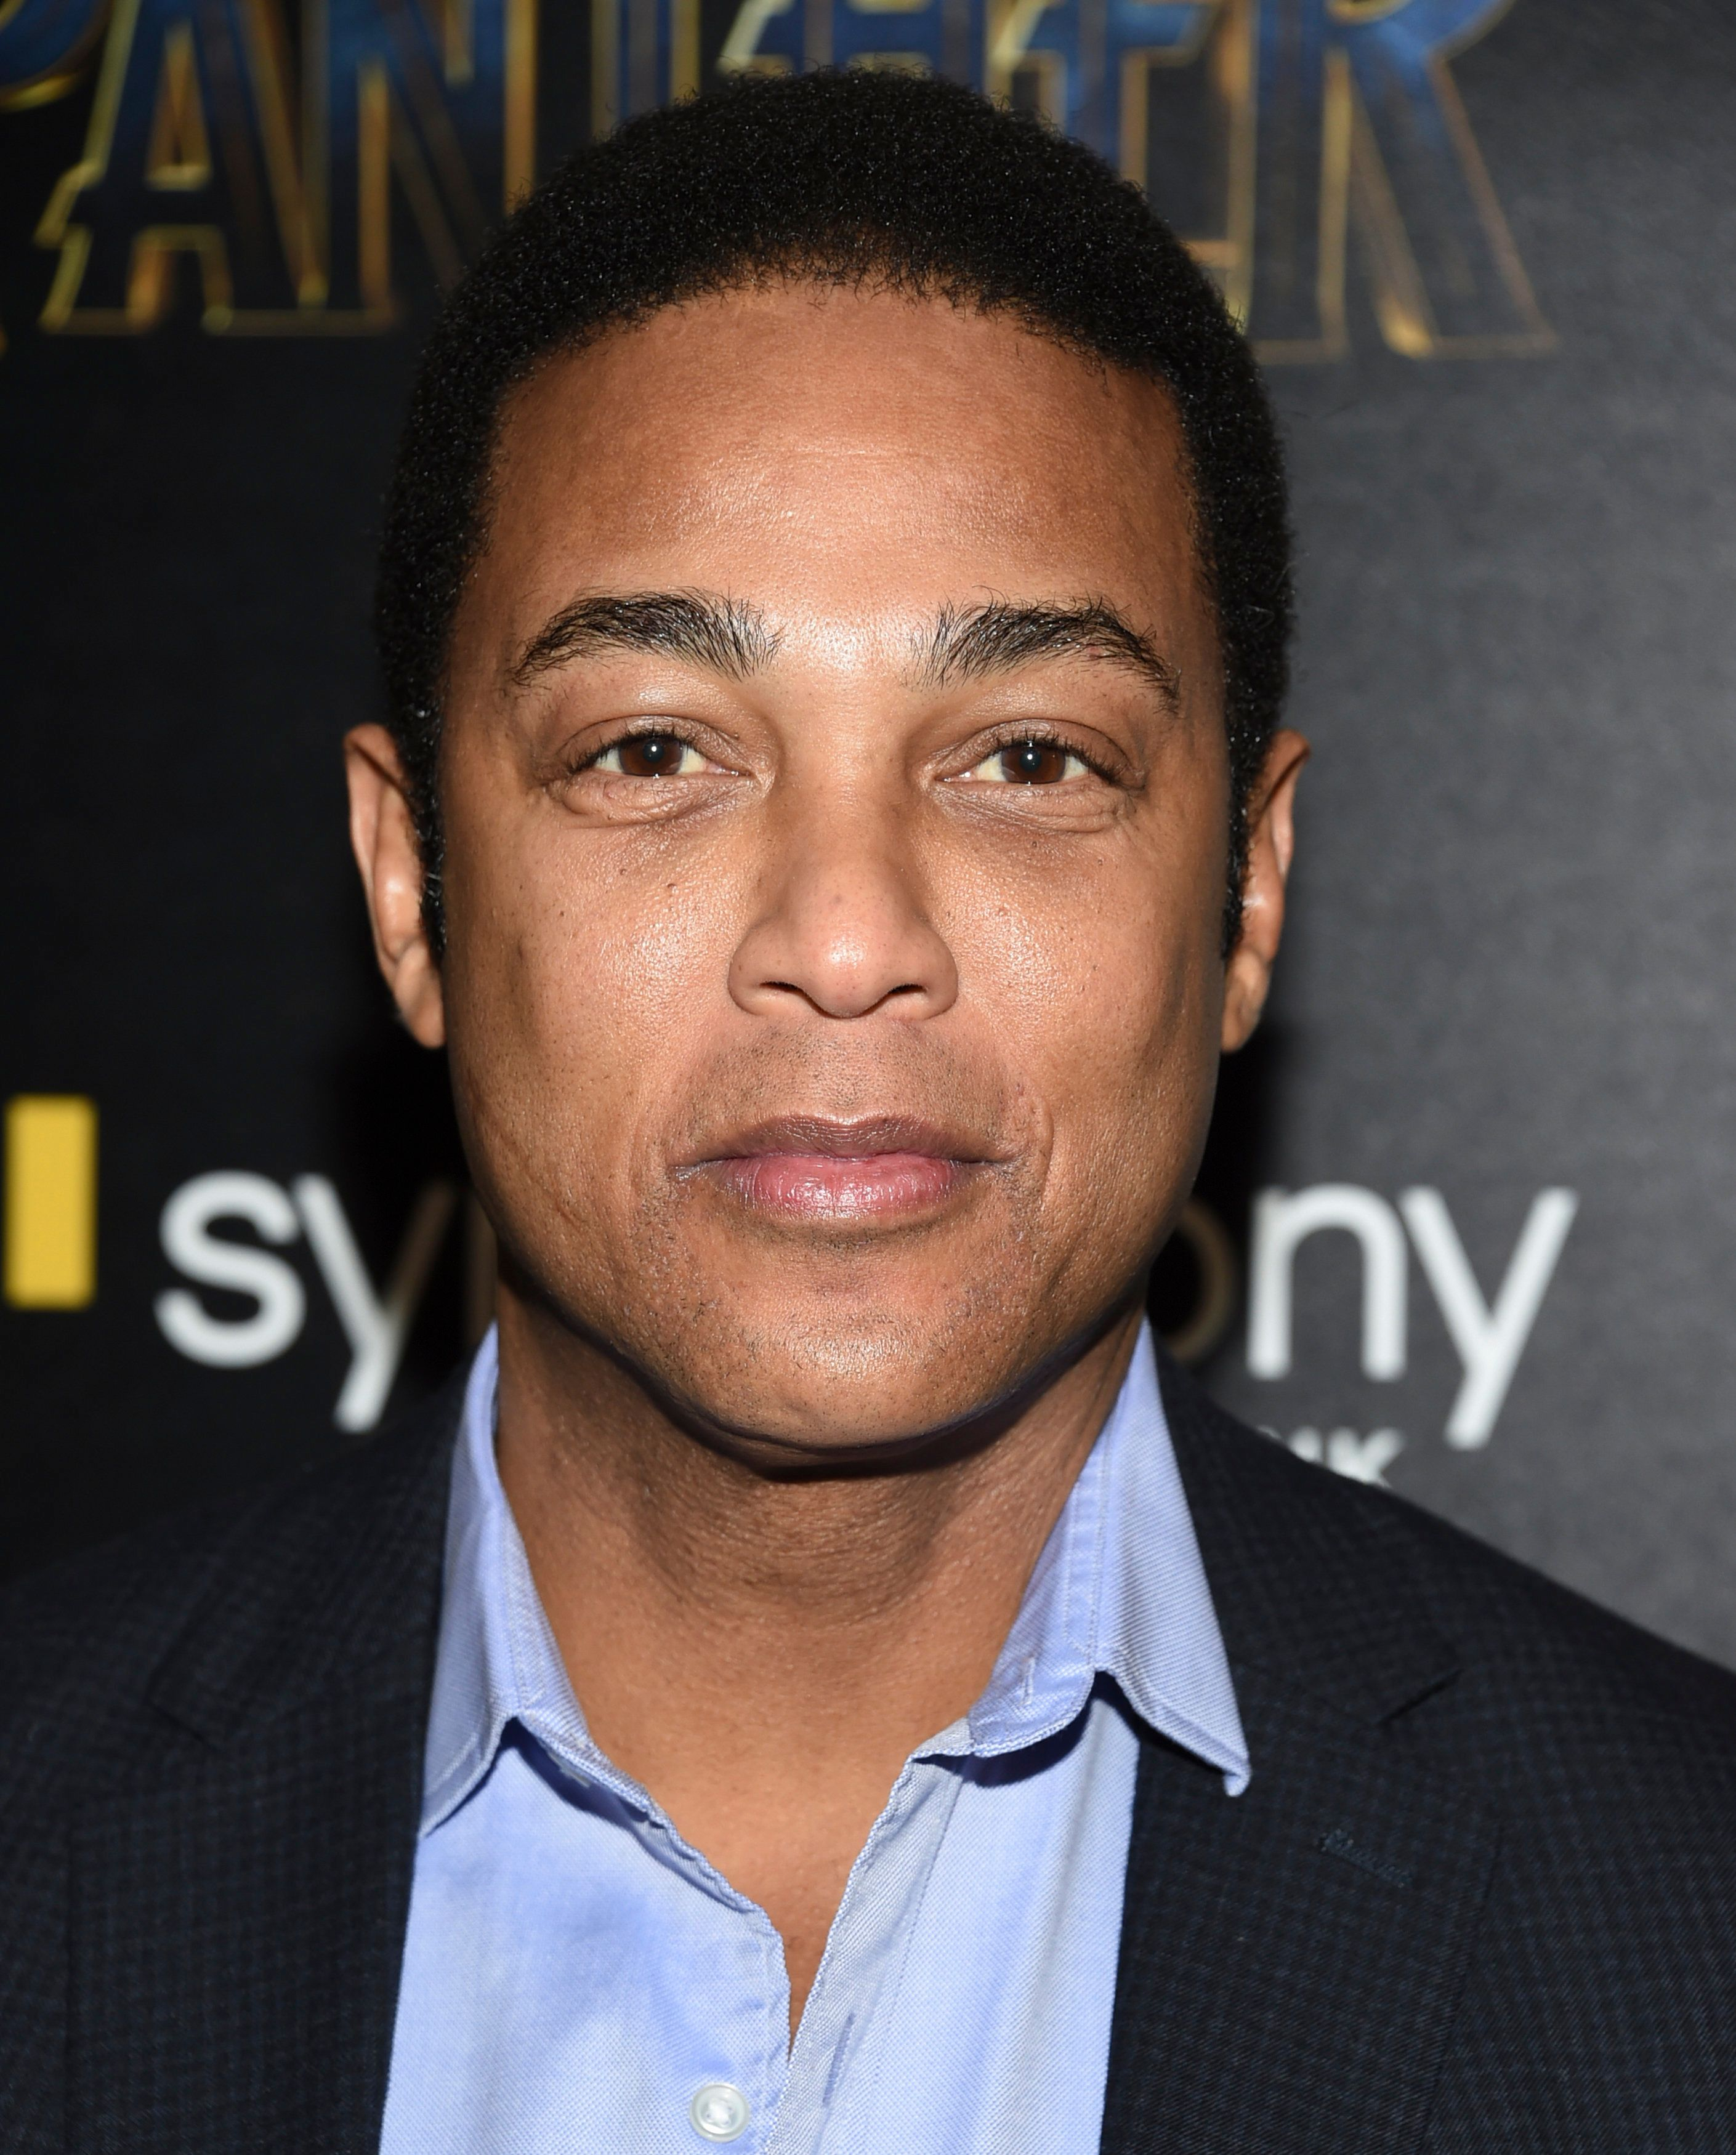 "Don Lemon attends a special screening of ""Black Panther"" at the Museum of Modern Art on Tuesday, Feb. 13, 2018, in New York. (Photo by Evan Agostini/Invision/AP)"